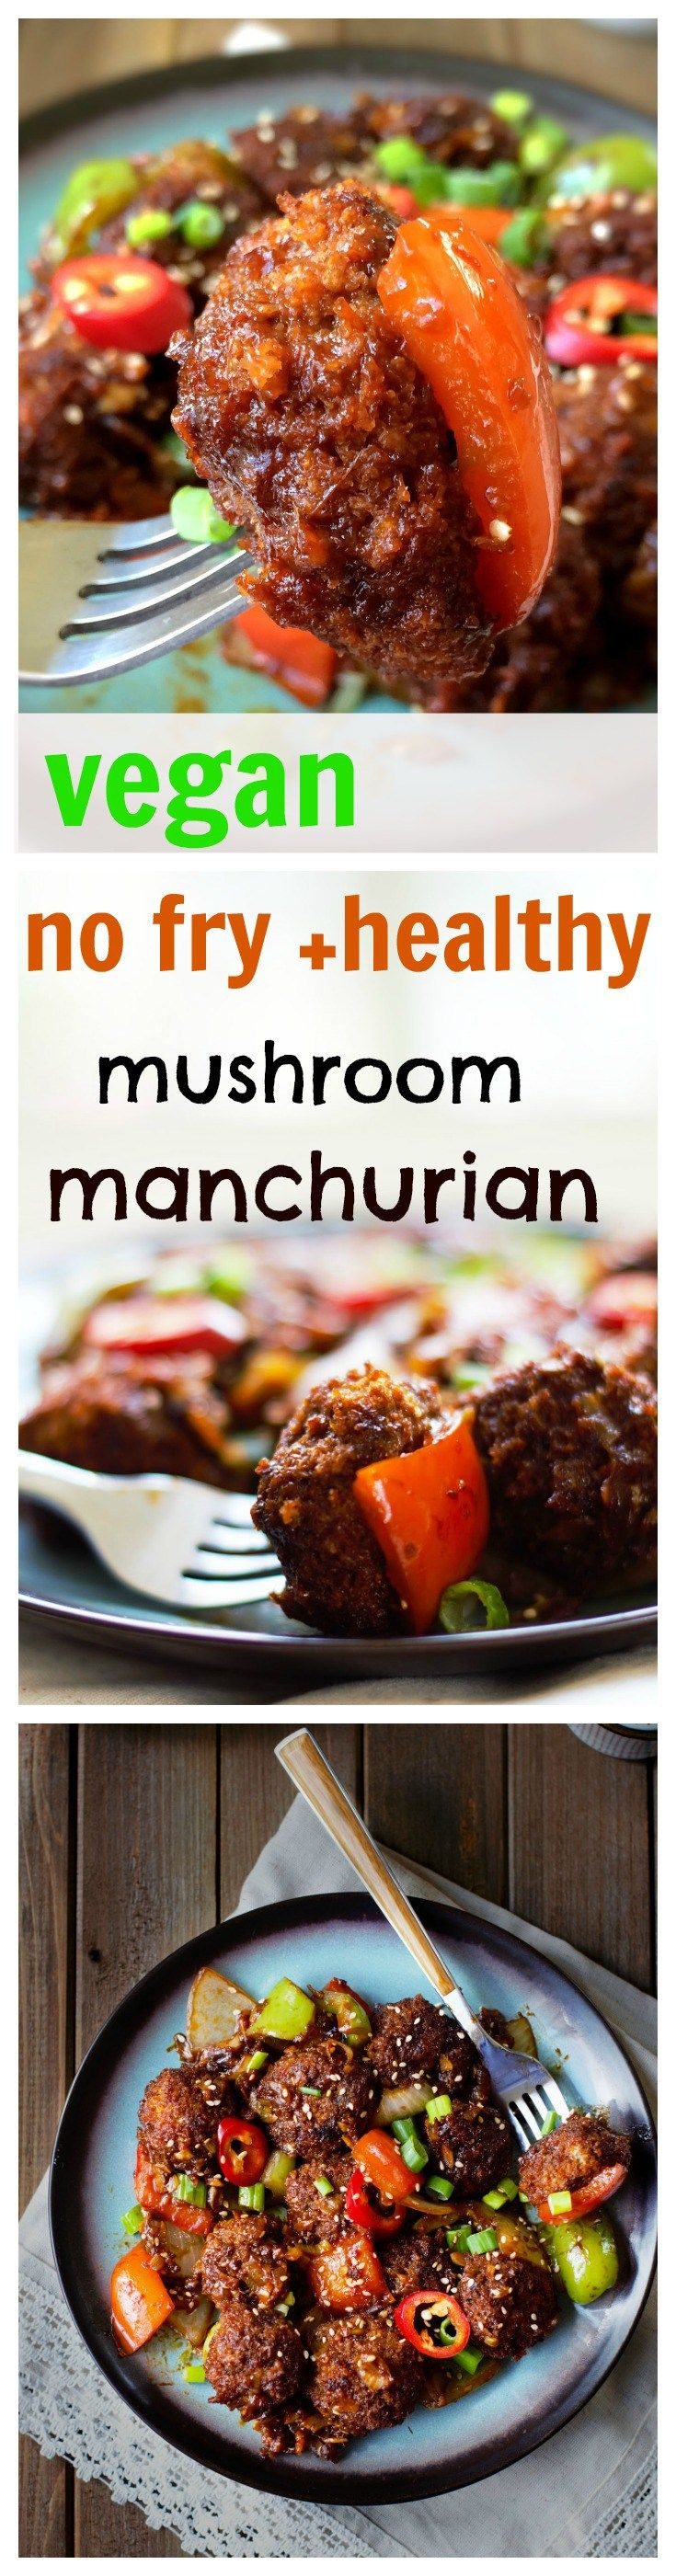 No fry vegan mushroom manchurian - indo chinese makes a great appetizer. Dunk it in a gravy and enjoy it with steamed rice or noodles.